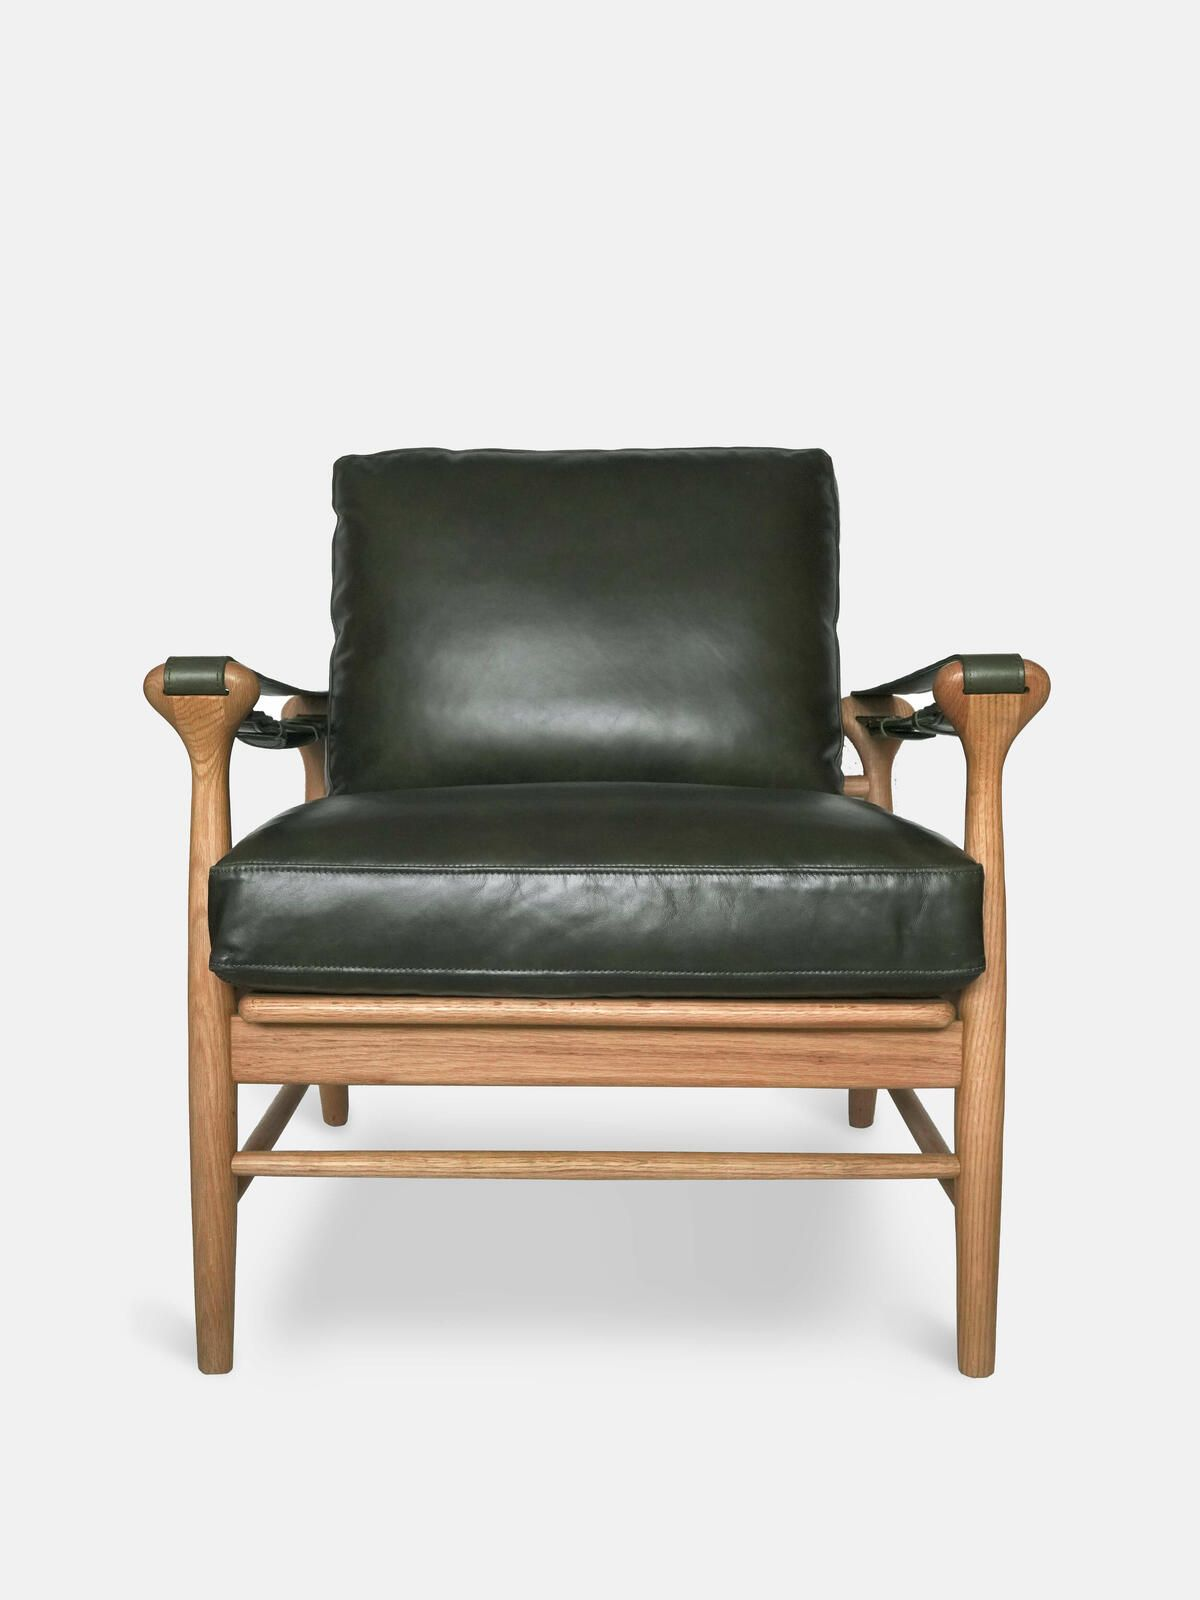 Campden Arm Chair In Avocado Leather Arm Chairs Soho Home Leather Armchair Armchair Chair